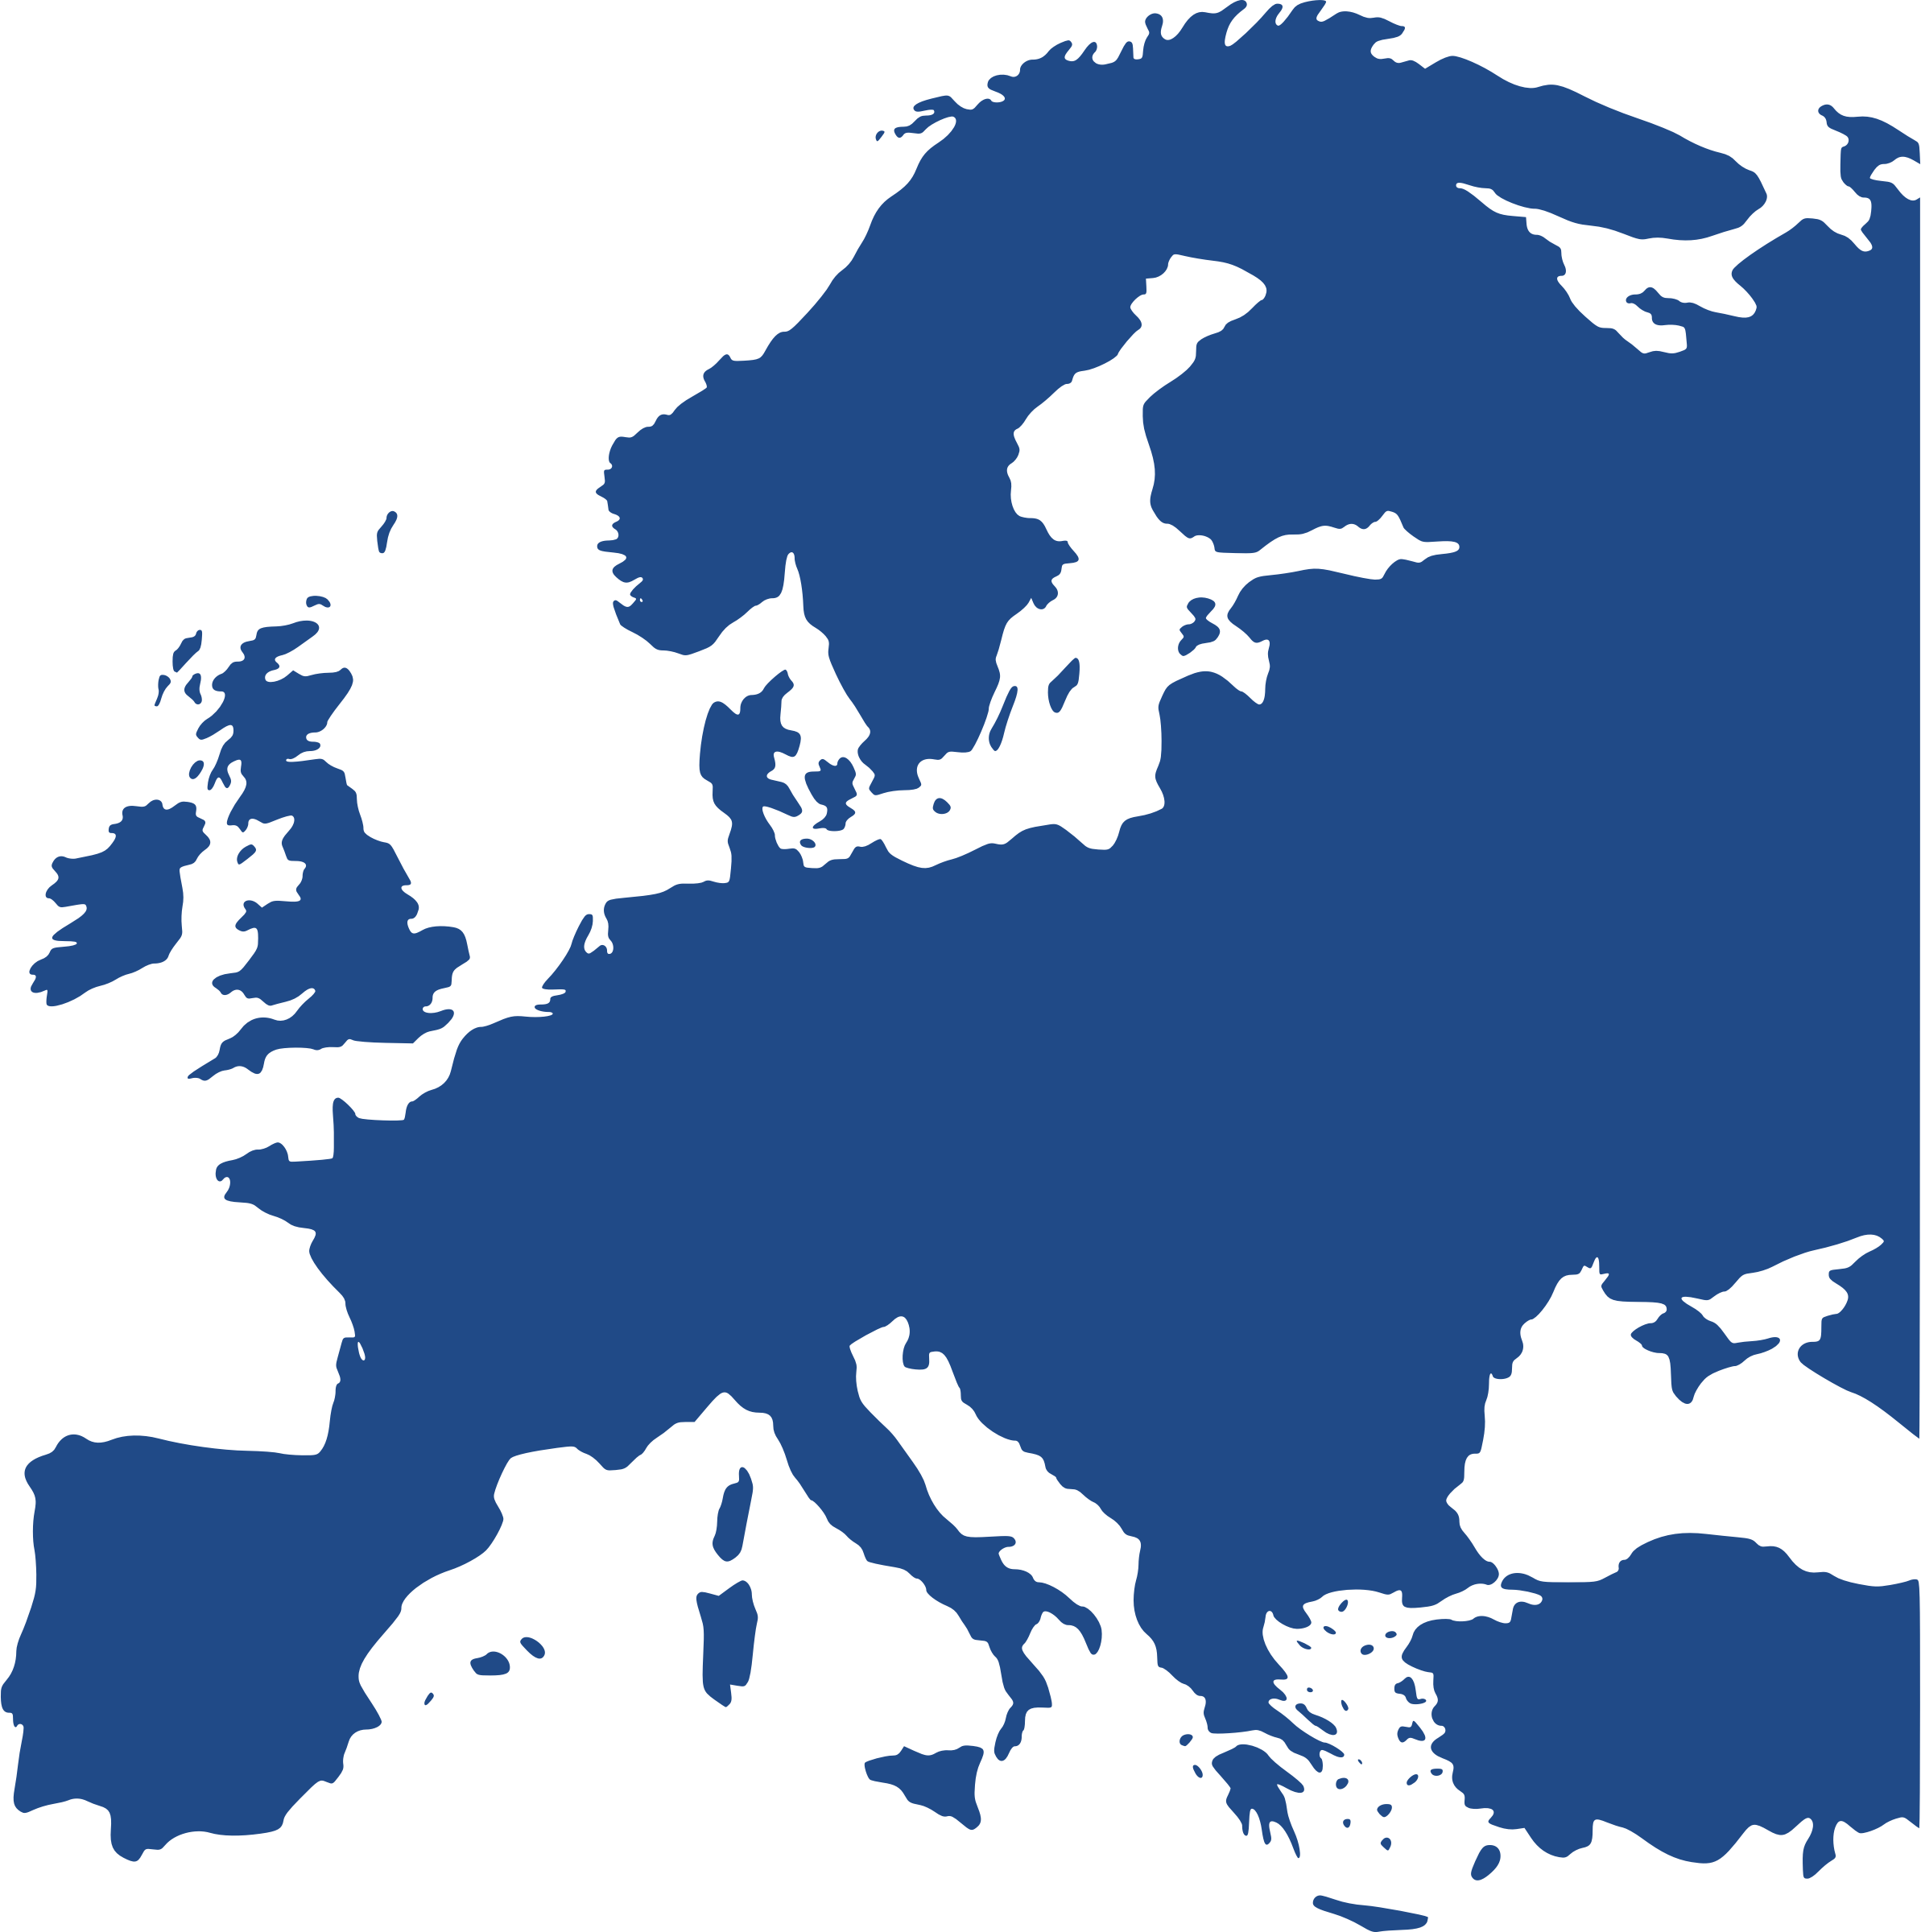 PNG Europe Map - 64400